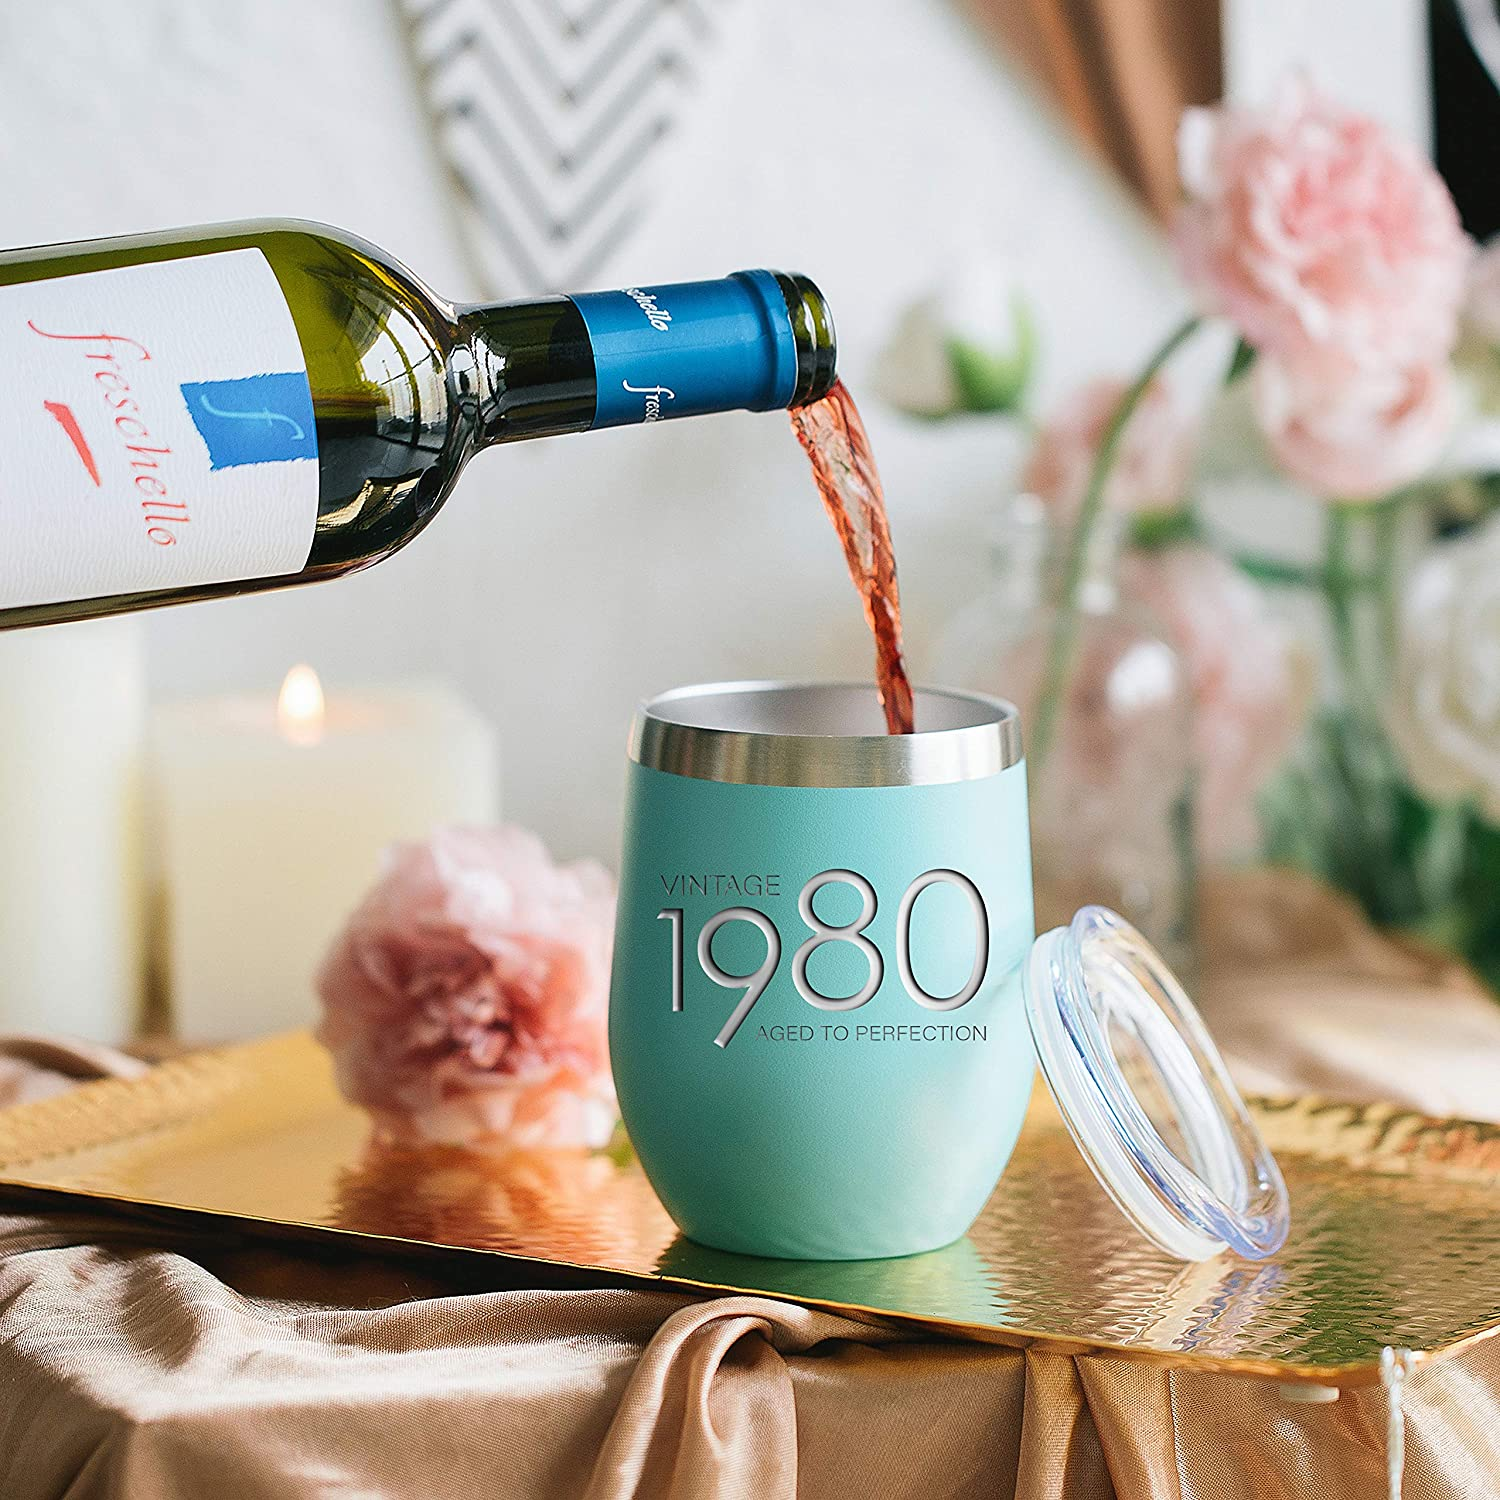 Party Decorations Supplies Anniversary Tumblers Gift th 1980 40th Birthday Gifts for Women and Men Mint 12 oz Insulated Stainless Steel Tumbler 40 Year Old Presents Mom Dad Wife Husband Present